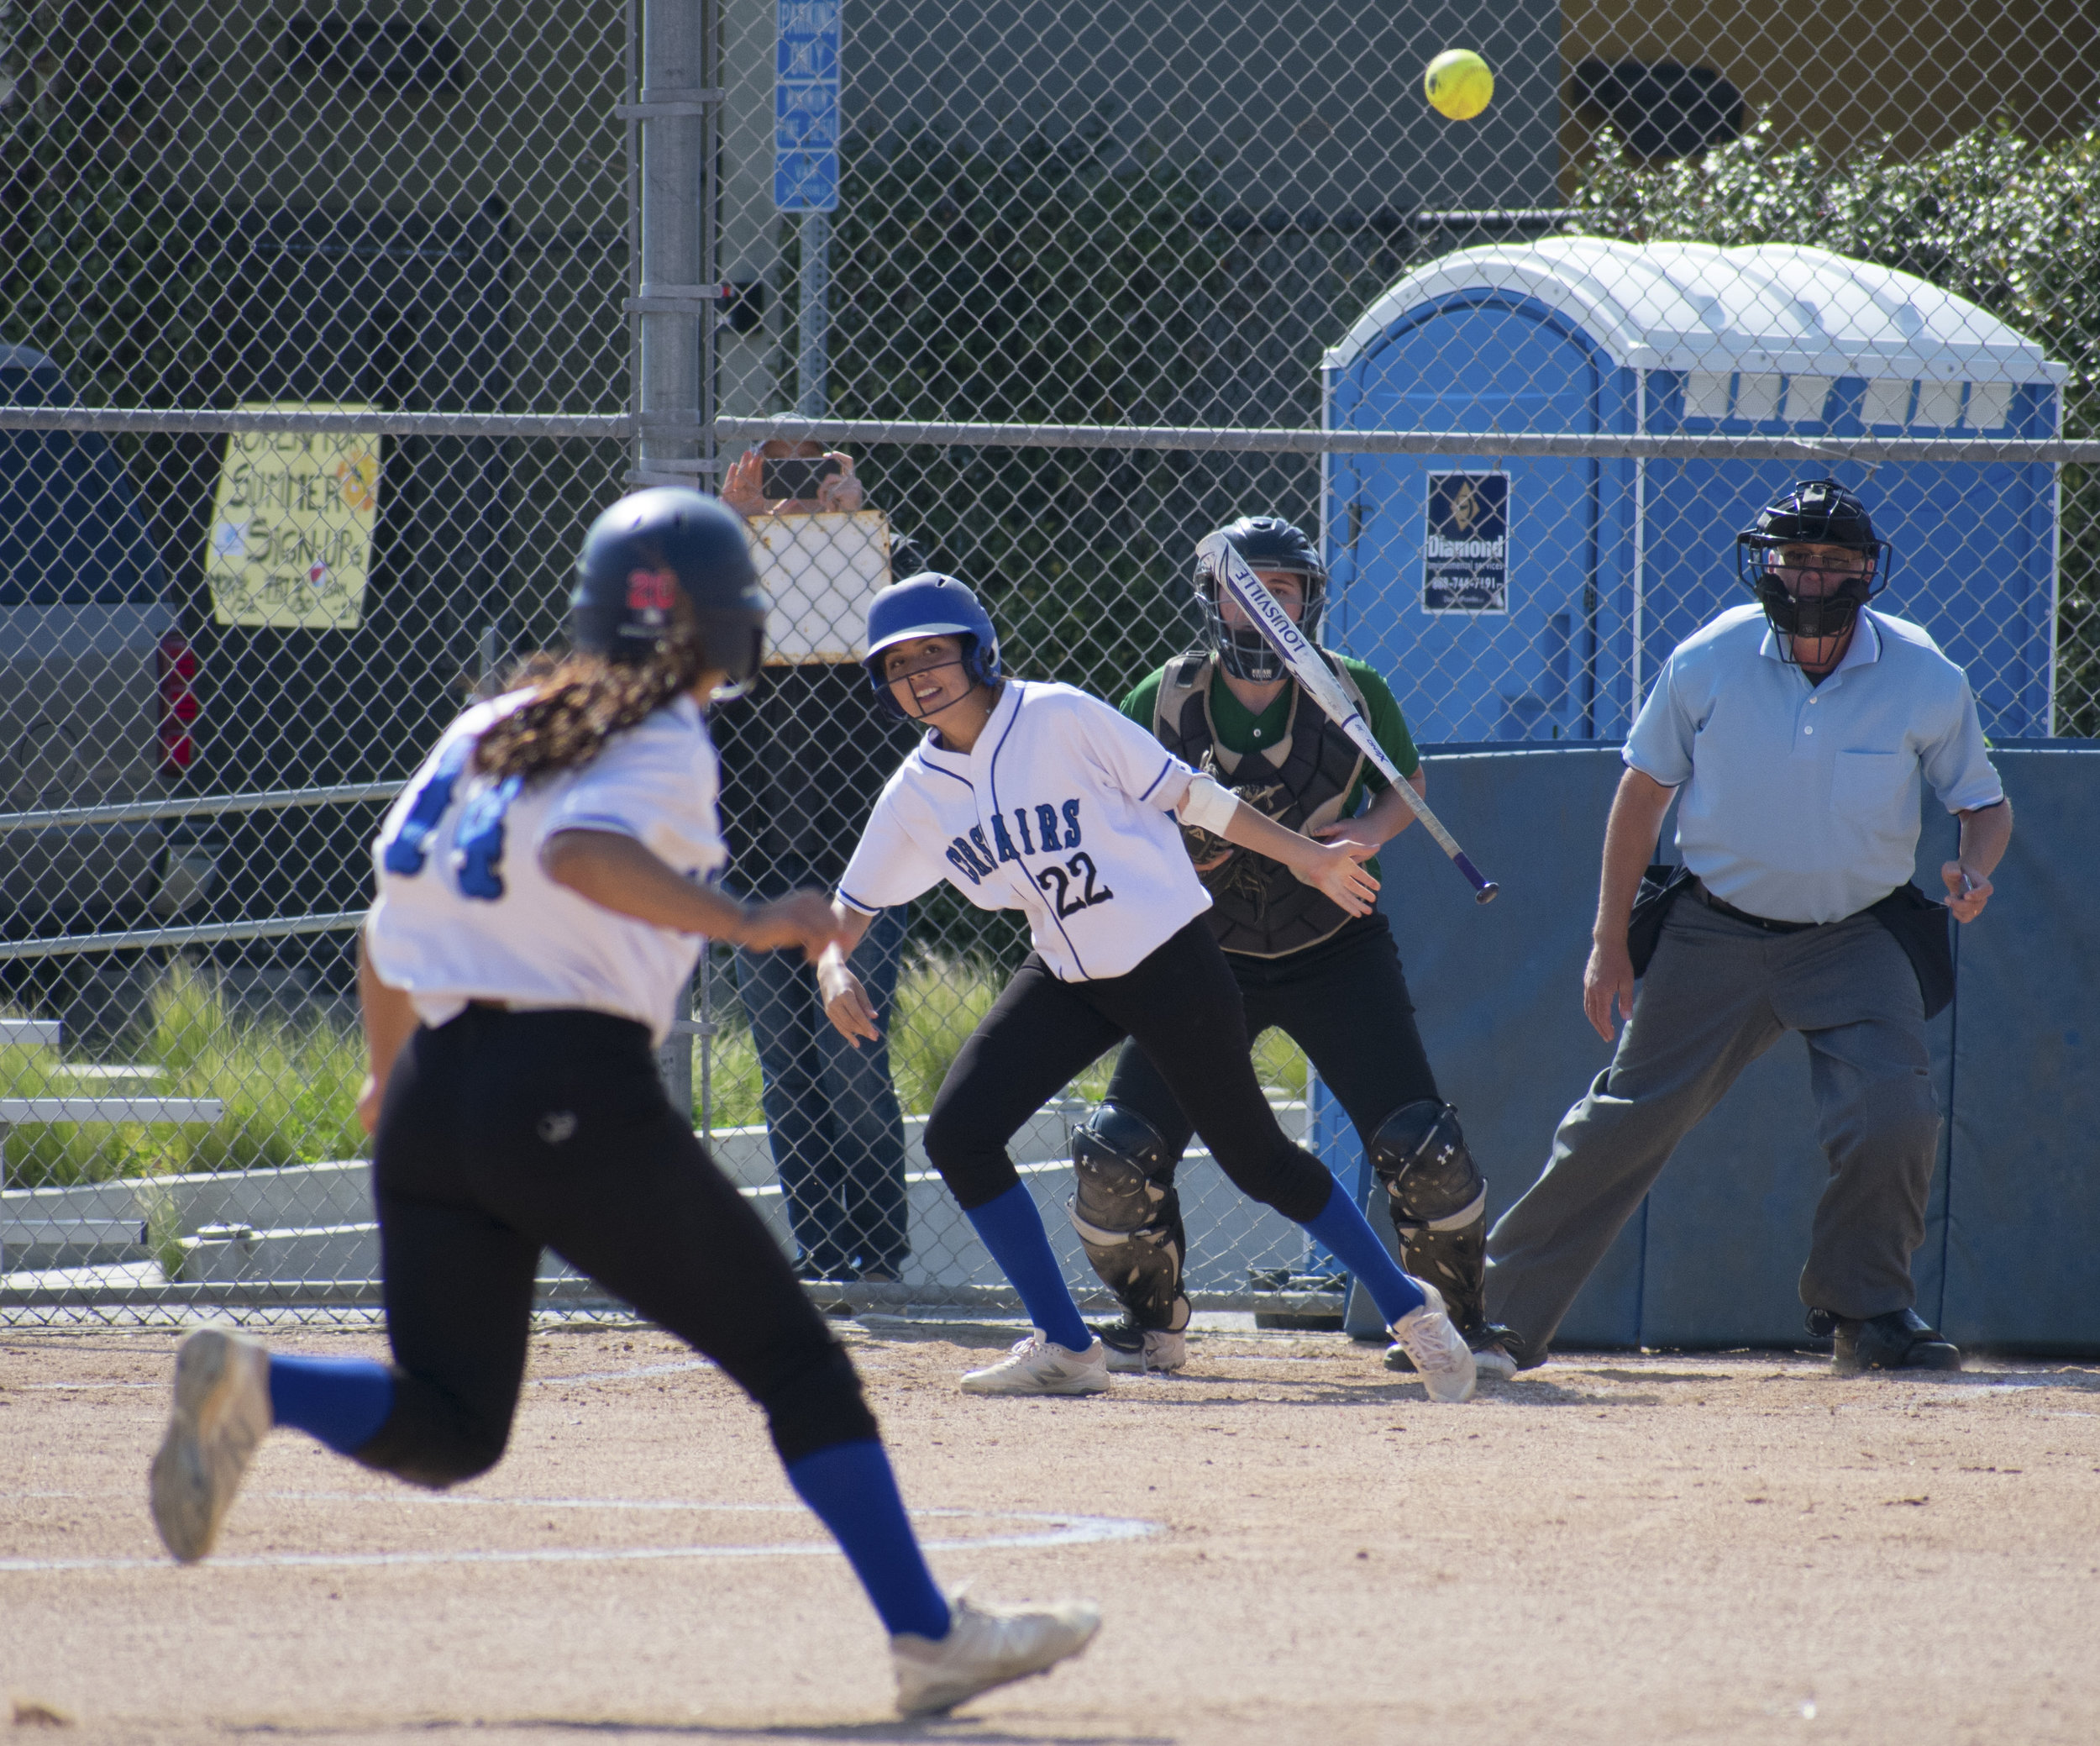 Santa Monica Corsair Erika Soto (#22) proceeds to run to second base after striking as Jen Baca (#14) runs to third during a softball game against the Cuesta College Cougars on Tuesday, April 4 at the John Adams Middle School Field in Santa Monica, California. It was a close 10-inning game, which ended in a 6-5 loss for the Corsairs. (Ethan Lauren/Corsair Photo)